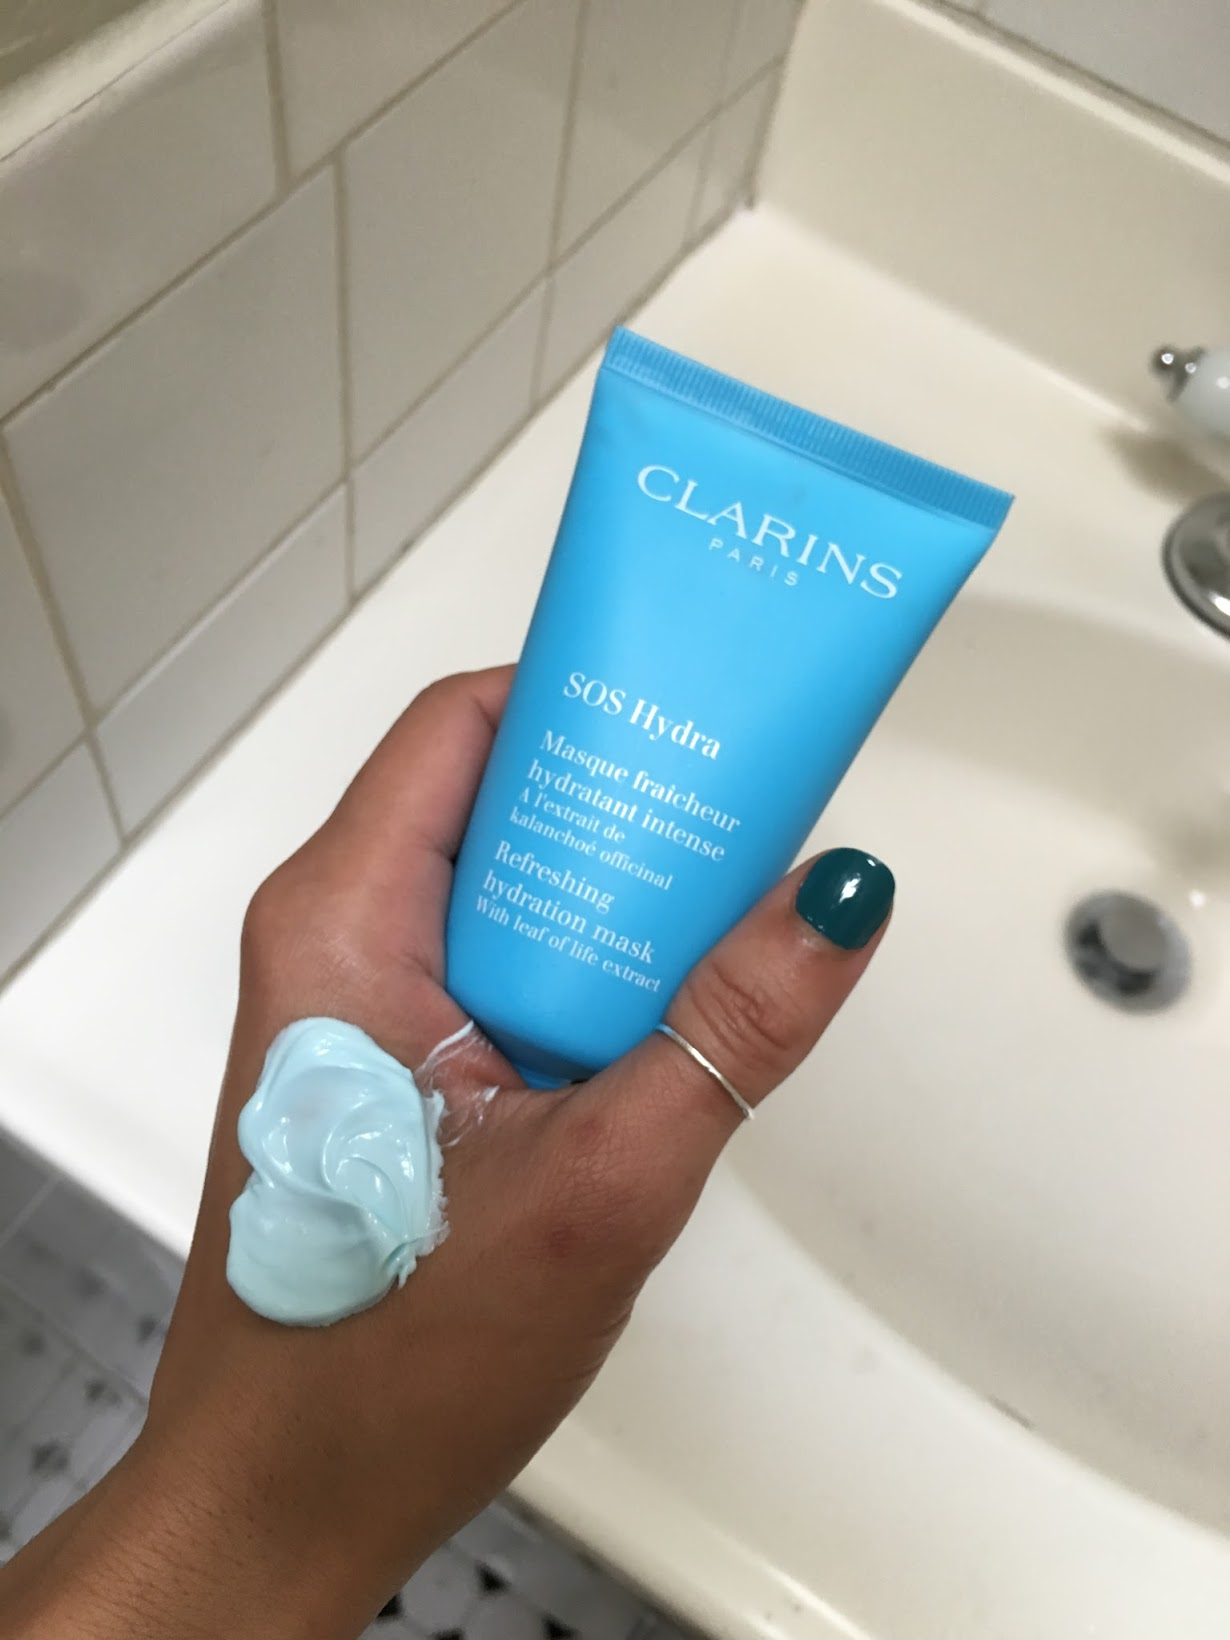 Clarins SOS masks, Clarins skincare, SOS mask, weeknight hydration masks, hydration masks, best skincare for winter